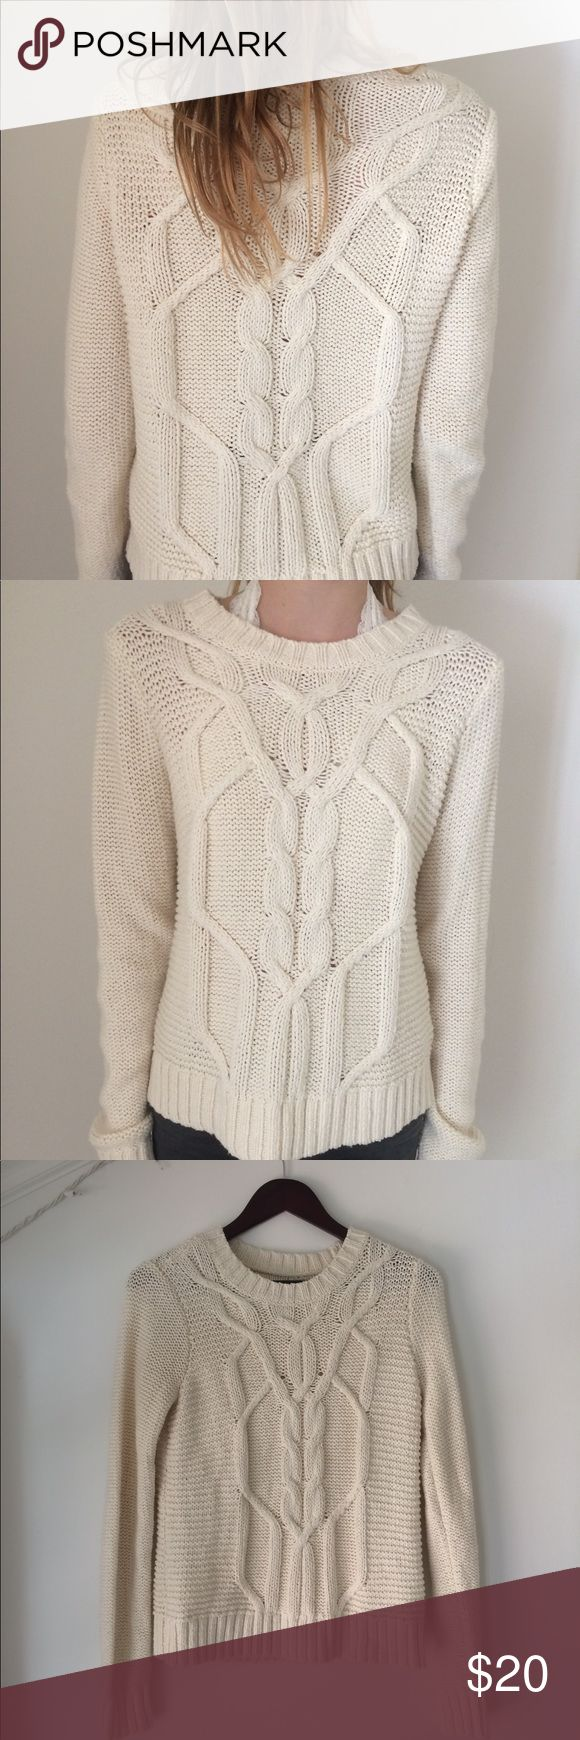 NWOT A&F Knit Cable Classic Sweater NEVER WORN (NWOT). This cable knit, size SMALL sweater can be worn by sizes XS and S. Both models are 5'7 and the sweater ends a little below the hips (a great fit). Comment any questions below and don't be afraid to make offers or bundle this one up! Abercrombie & Fitch Sweaters Crew & Scoop Necks